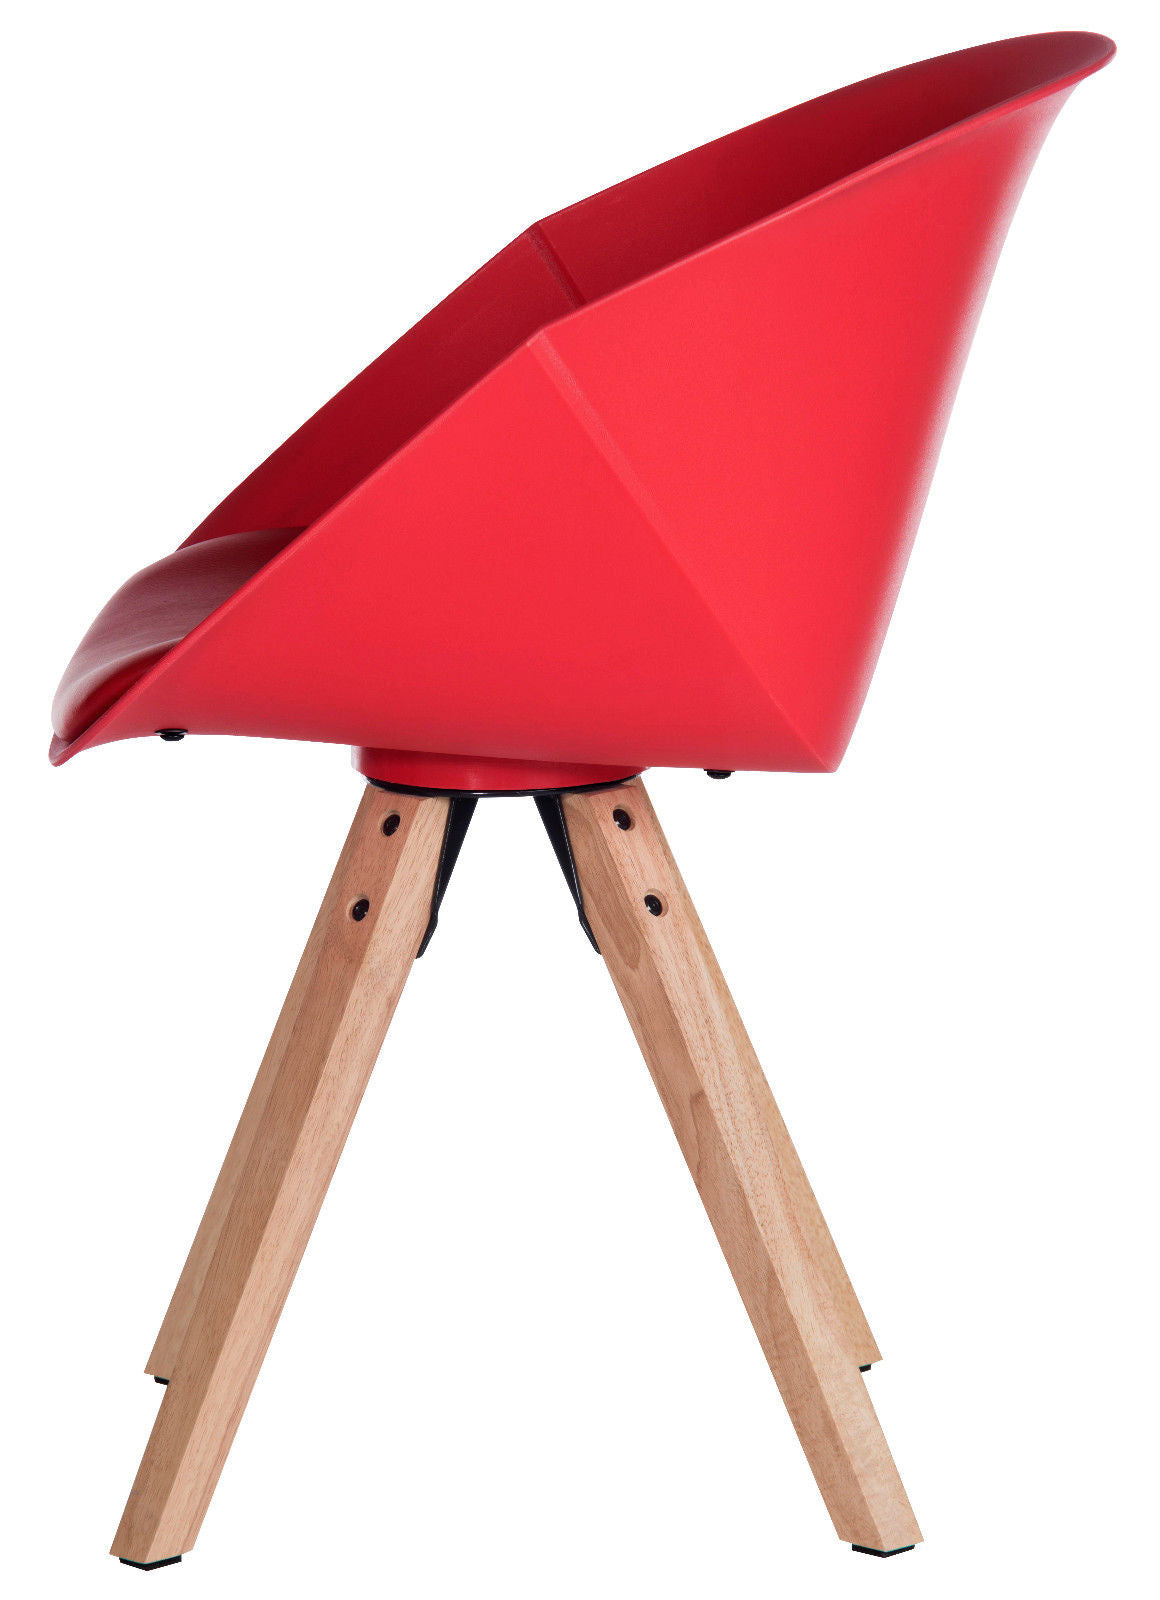 ... 2 Pyramid Padded Tub Chair | Red Reception Chairs | 1950u0027s Style ...